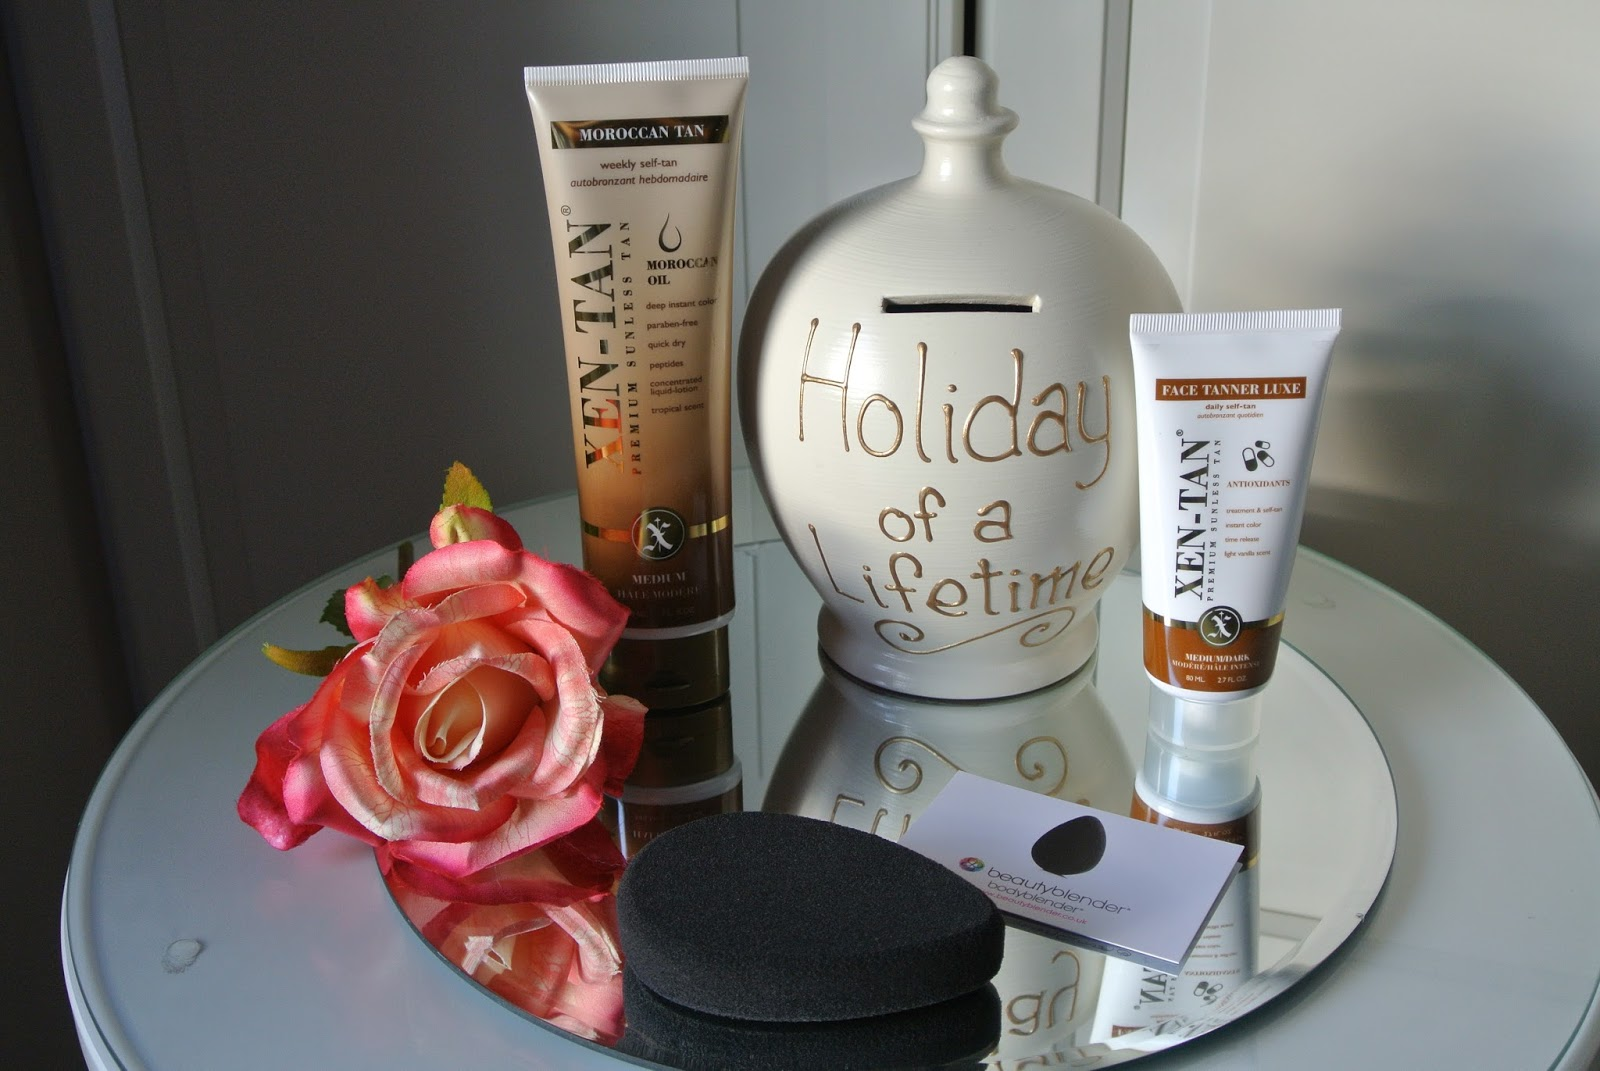 Xen Tan Moroccan Tan, Xen Tan Face Tanner Luxe and bodyblender review for a flawless tan